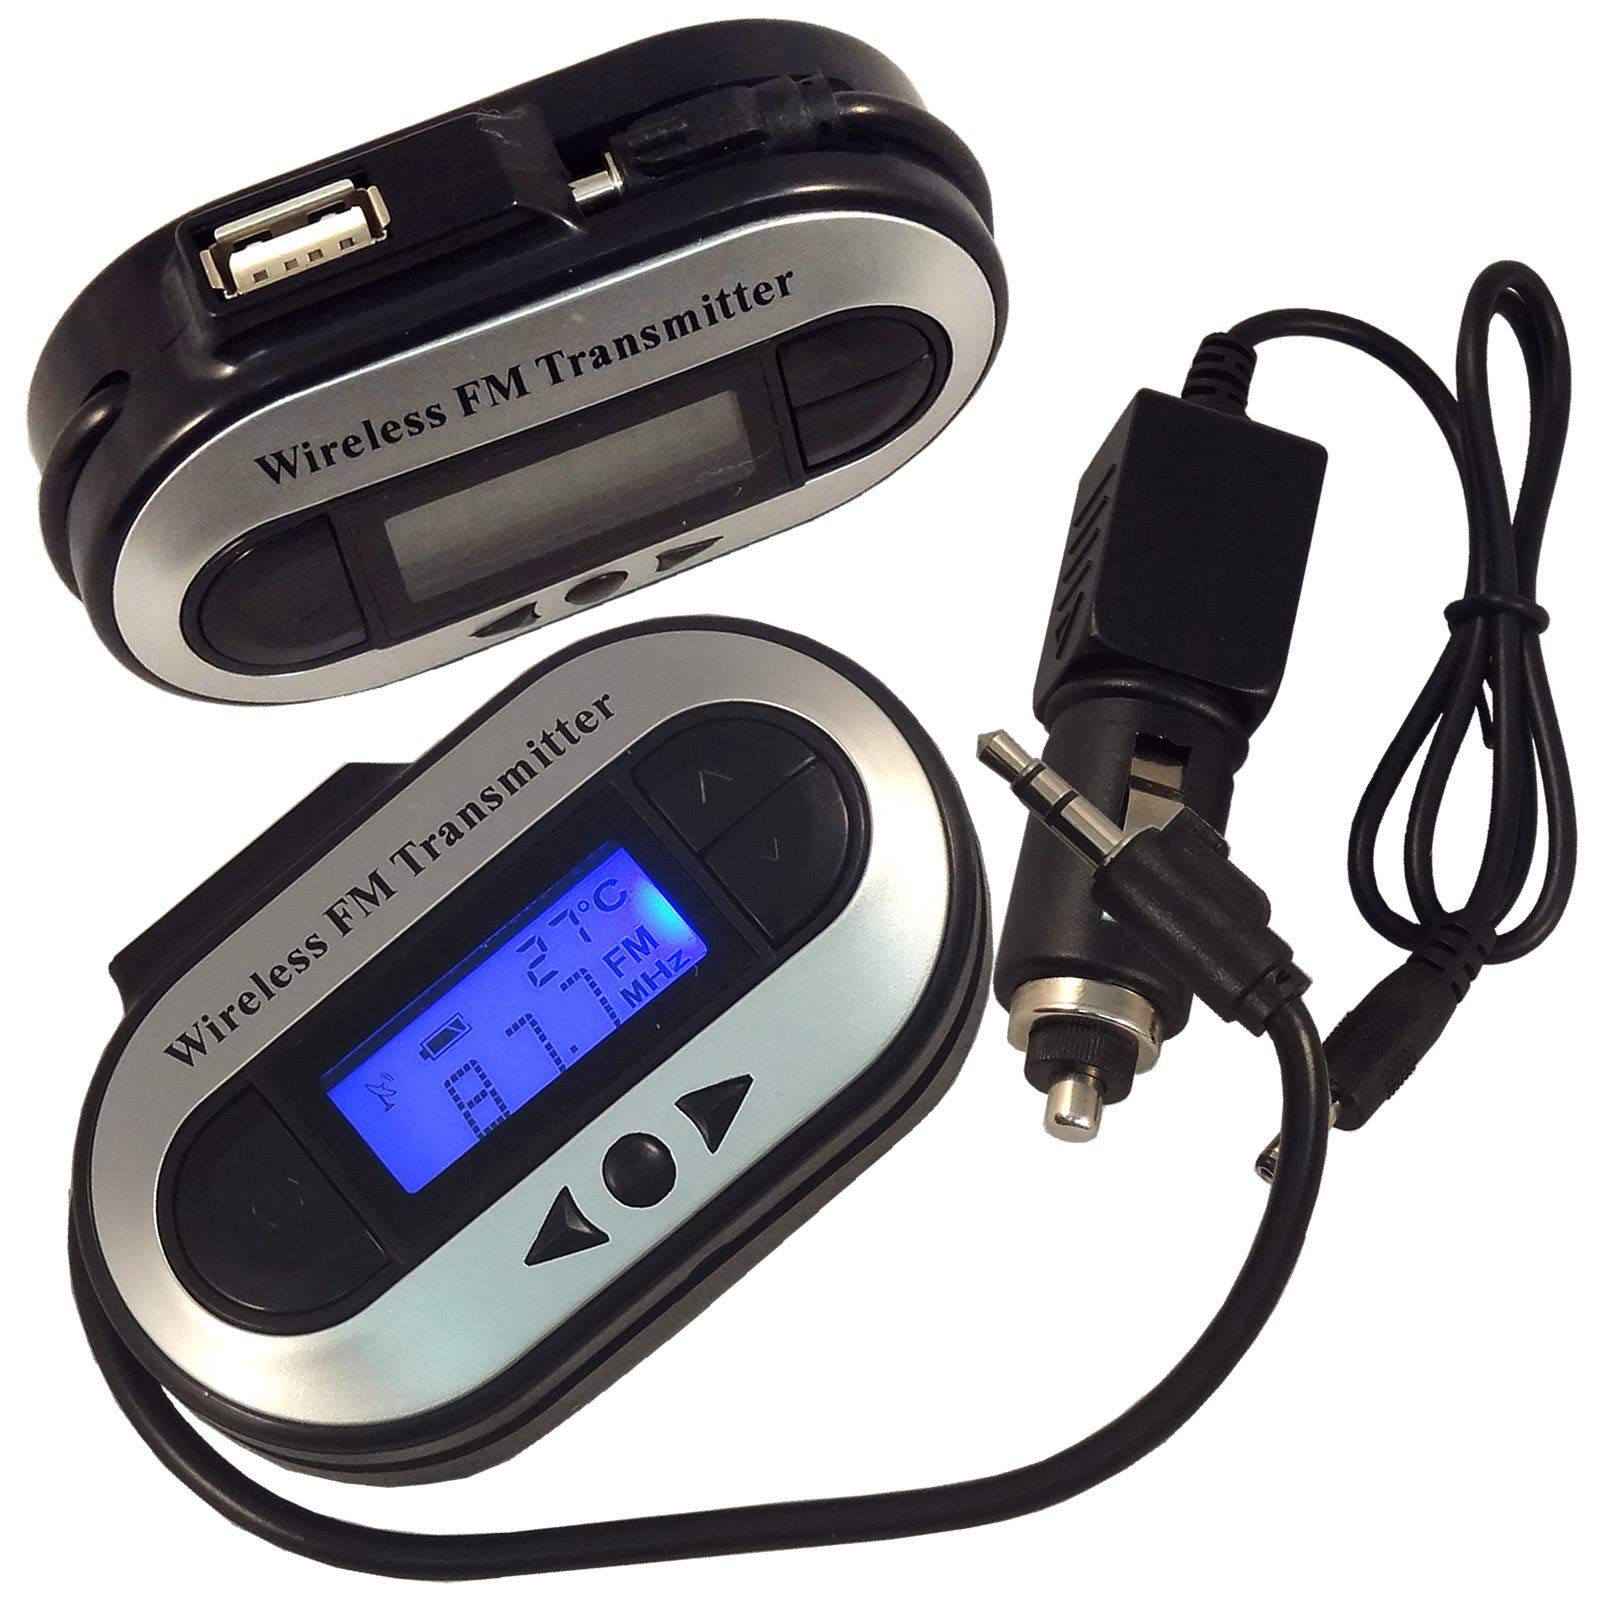 Energi8_blu Kit Car MP3 Player Wireless FM Transmitter 3.5mm Modulator LCD Charger for Phone